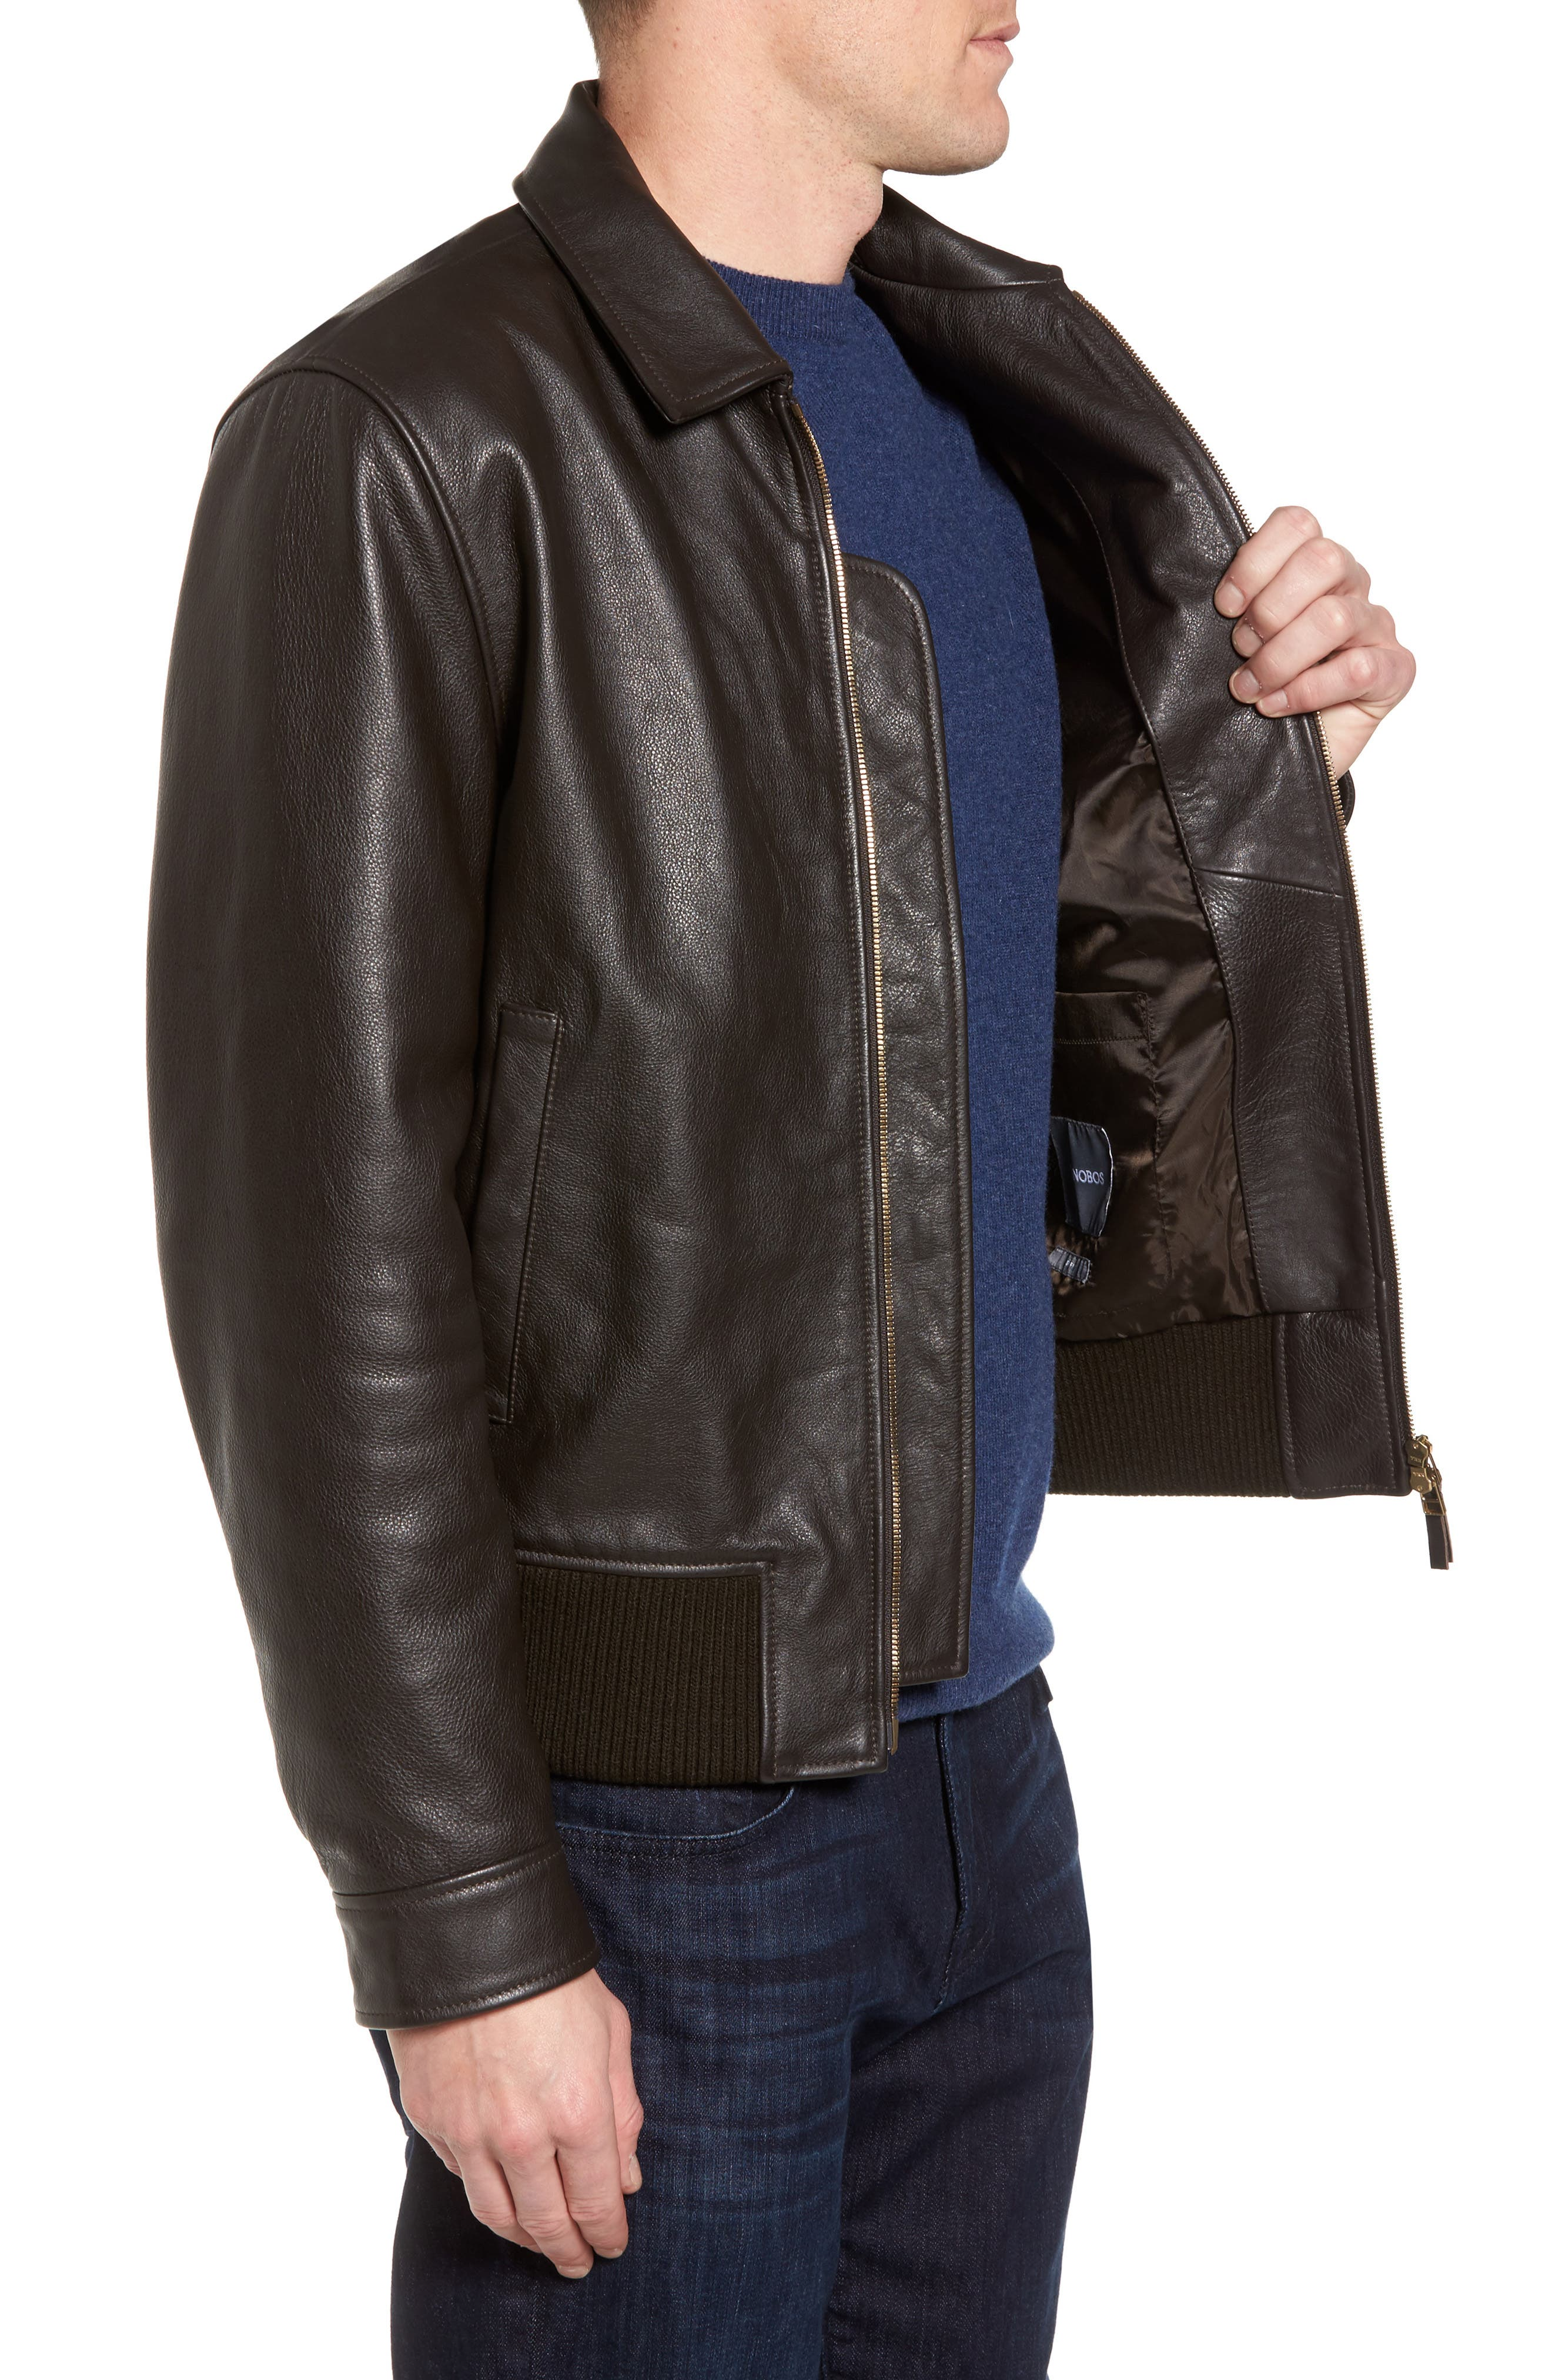 Year Round Leather Jacket,                             Alternate thumbnail 3, color,                             Espresso Brown